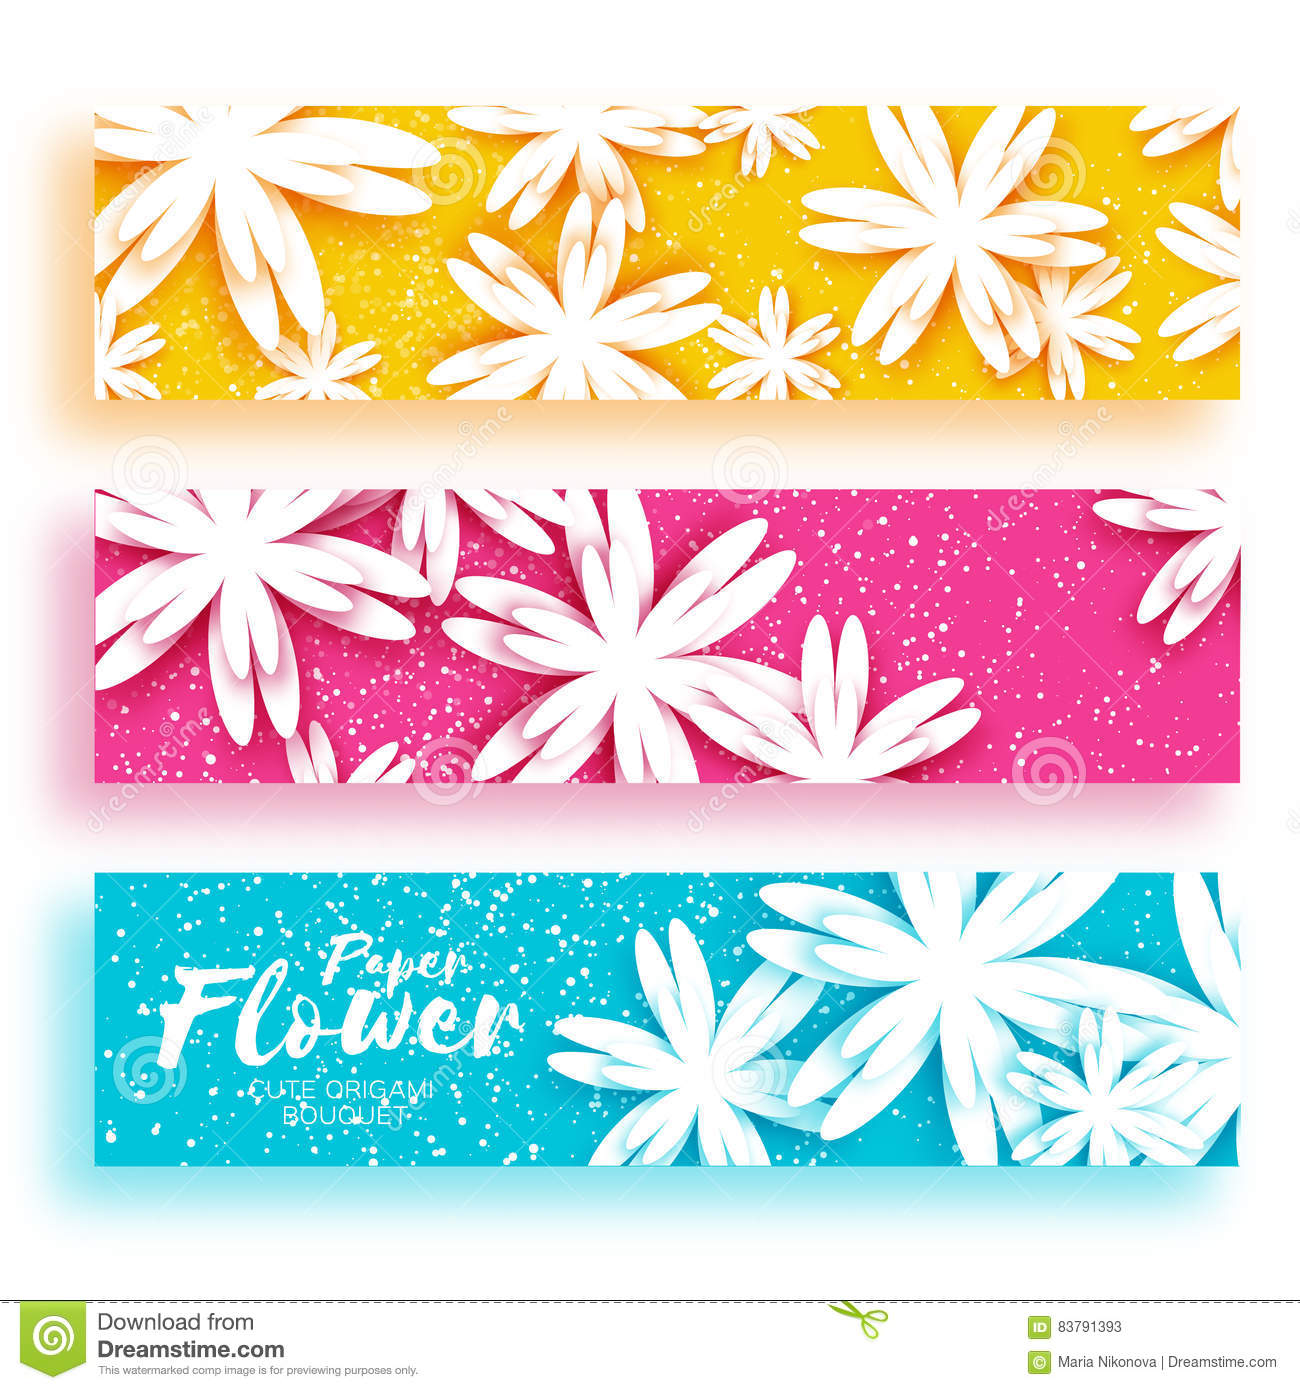 Three Invitation Banner Cards With Paper Cut Origami Flowers Stock